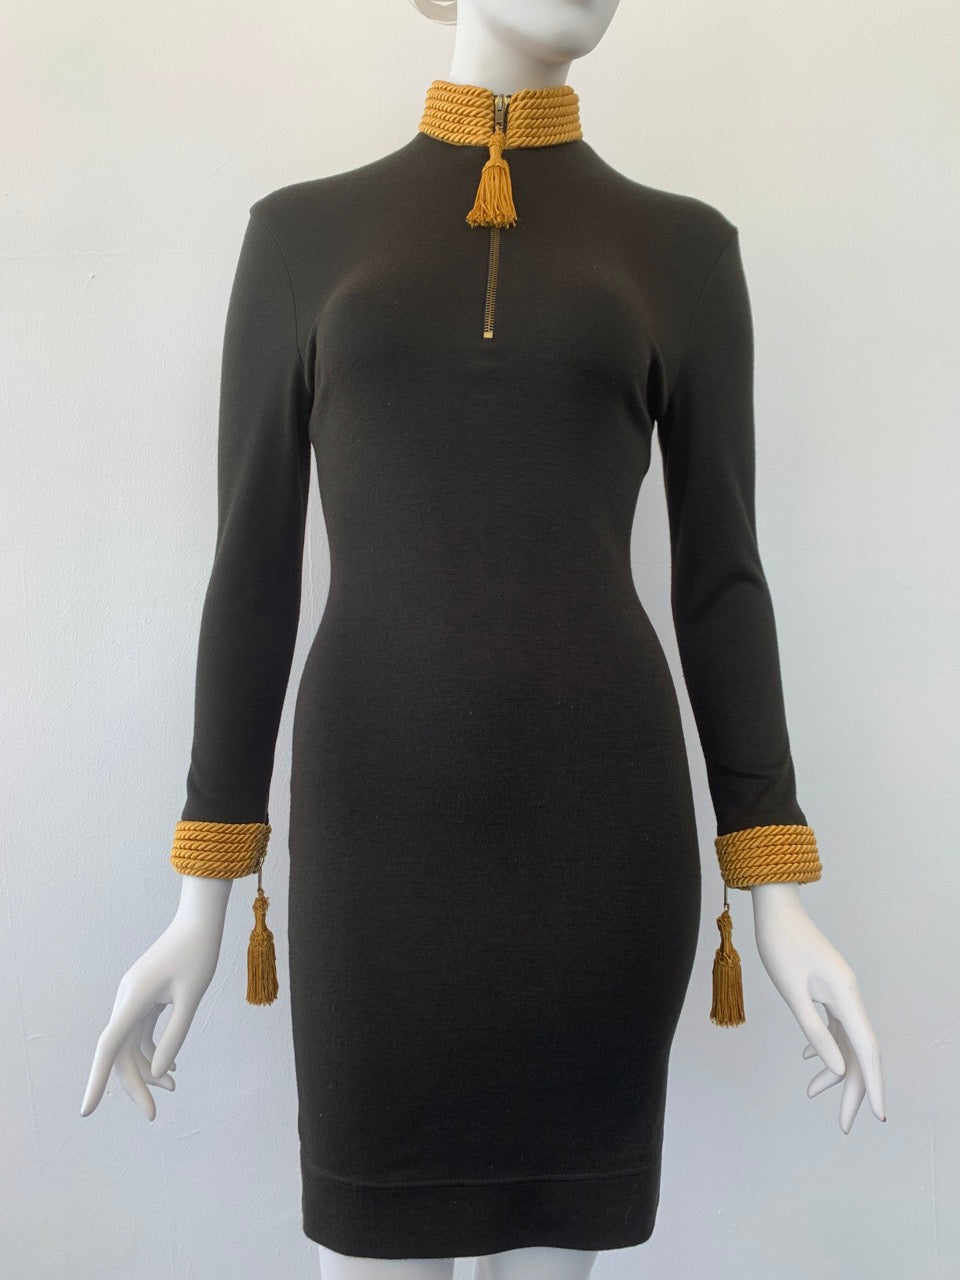 1992 Moschino Cheap and Chic knit bodycon dress with gold tassel trim neckline and cuffs